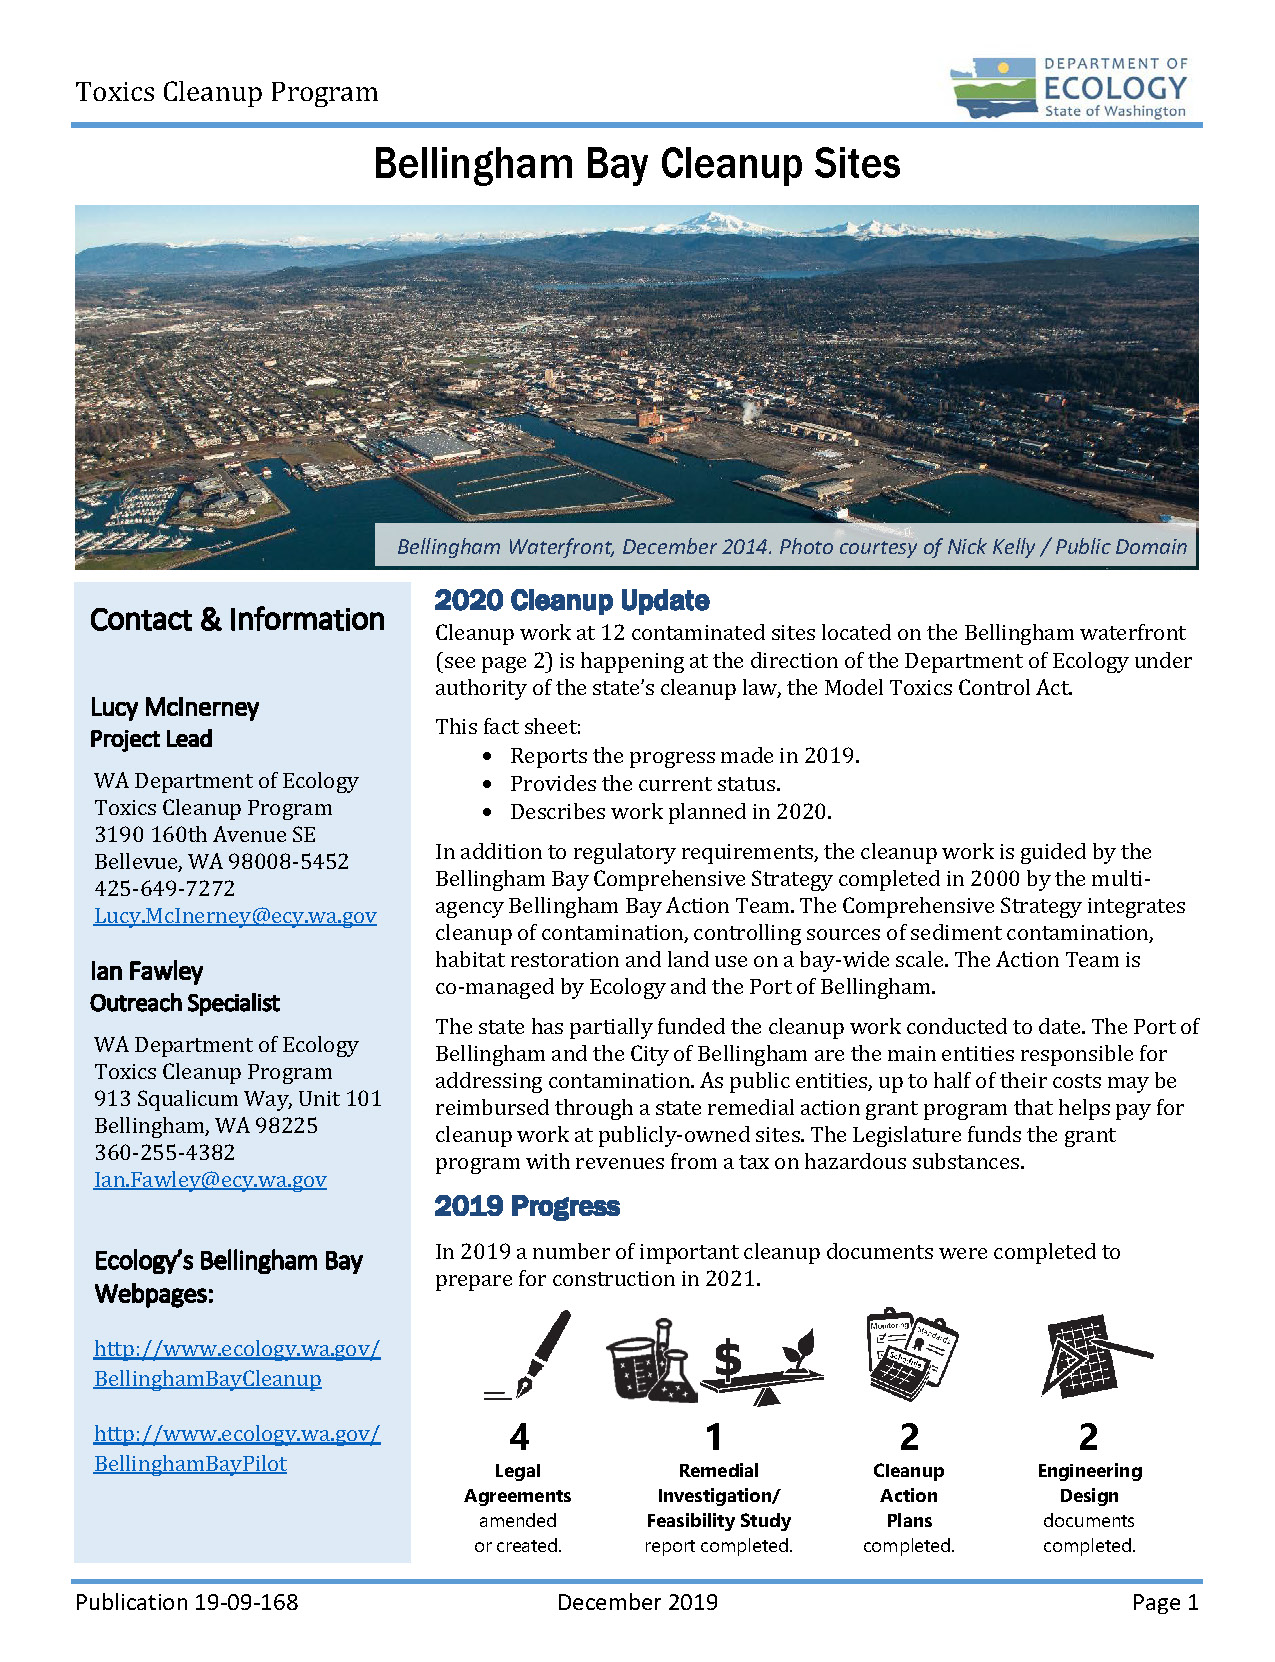 Fact sheet describing the 2019 progress, current status, and 2020 planned work for Bellingham Bay.